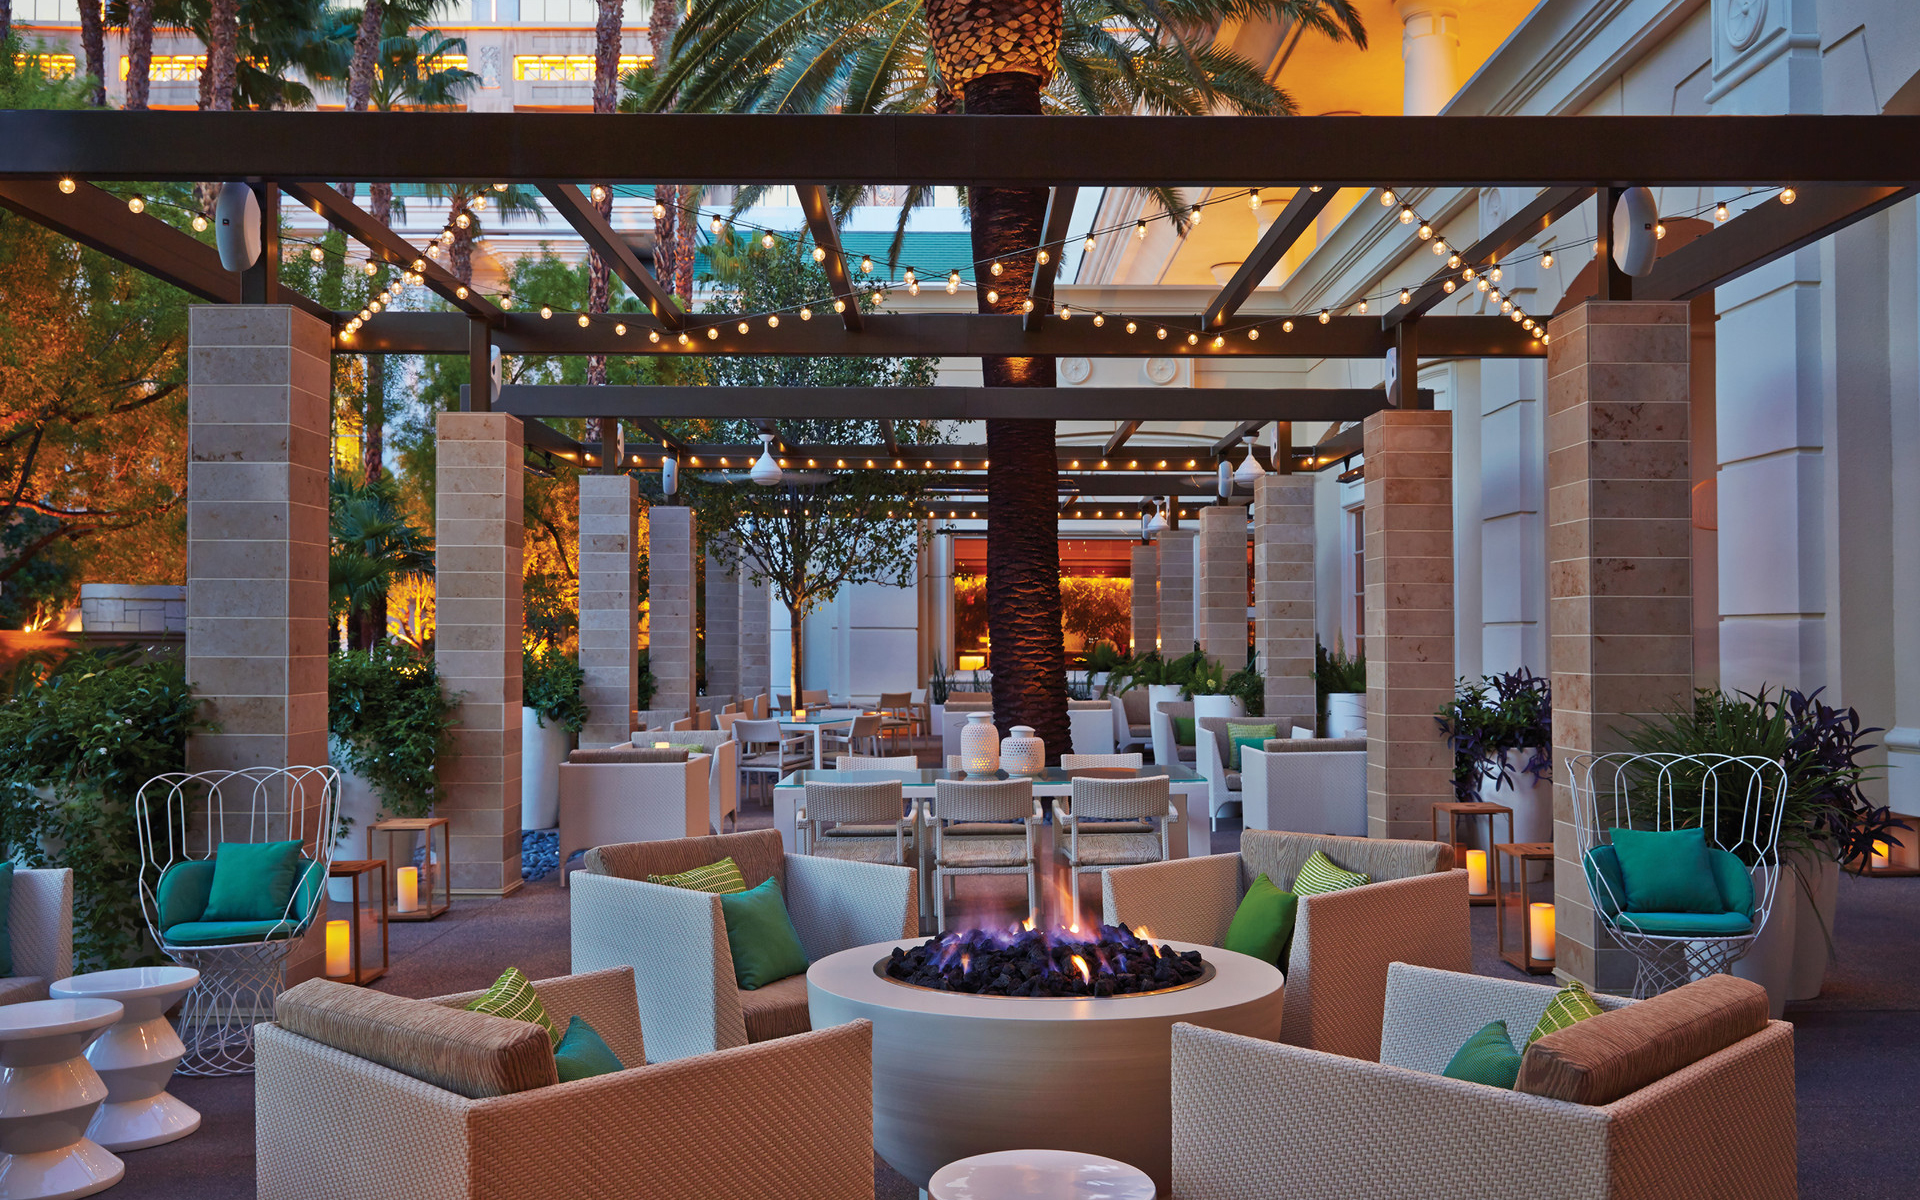 "The Four Seasons Hotel Las Vegas was the city's first hotel without a casino attached, and T+L readers took note. It received a score of 91.040, and one reader called it ""a nice oasis from the din of Vegas when you need a vacation from the vacation."" Another reader commented that it's great for business travelers. Guests can expect all the usual Four Seasons touches—elegantly decorated rooms with marble baths, attentive service, and great dining options."